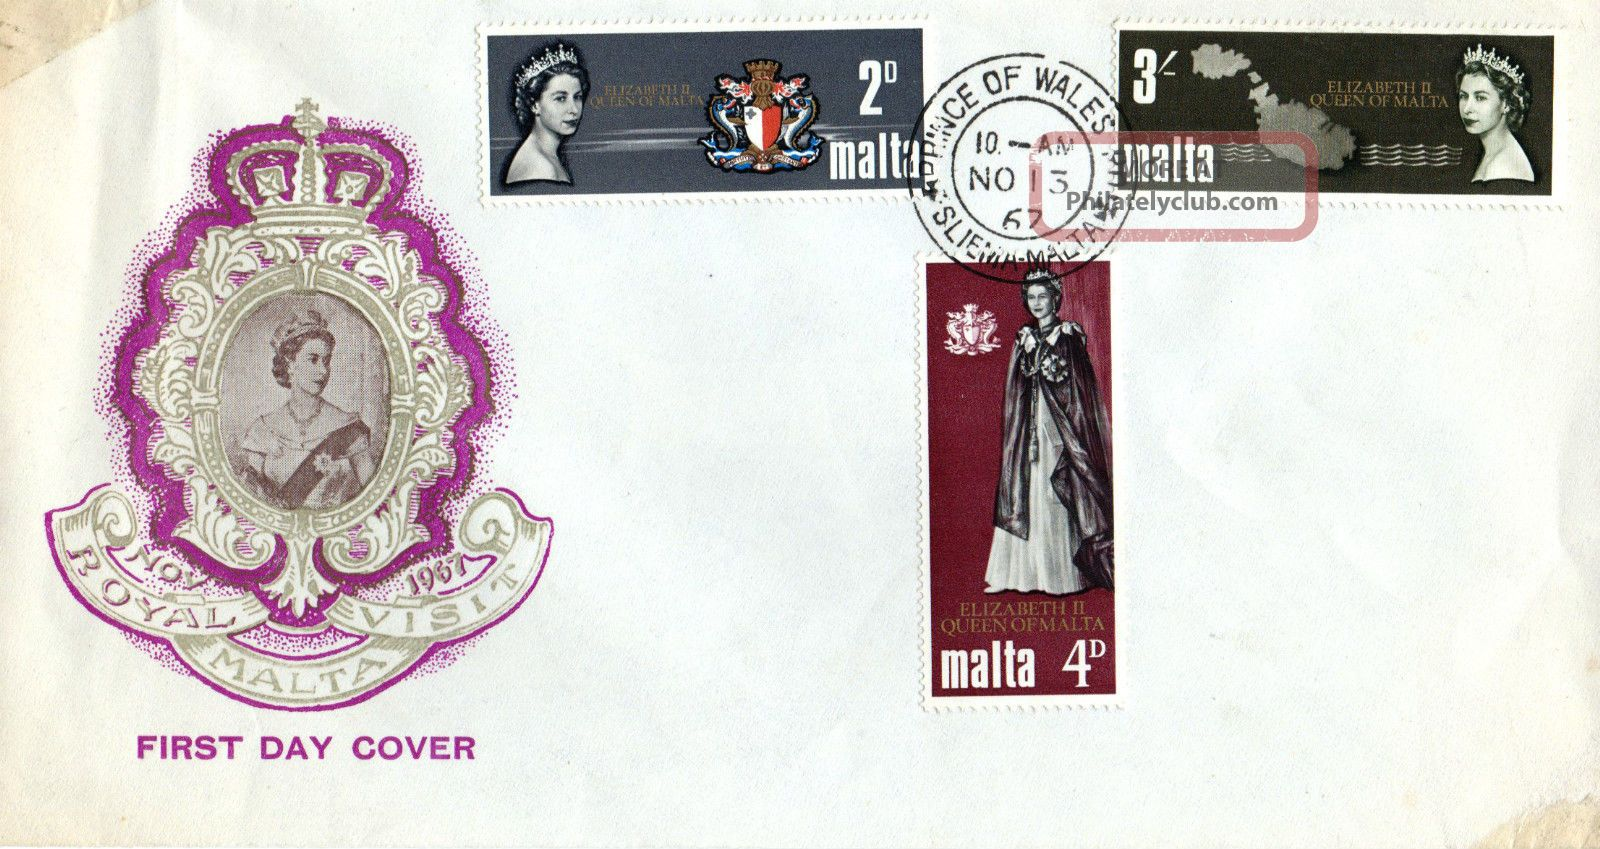 Malta 13 November 1967 Royal Visit Unaddressed First Day Cover Cds Europe photo